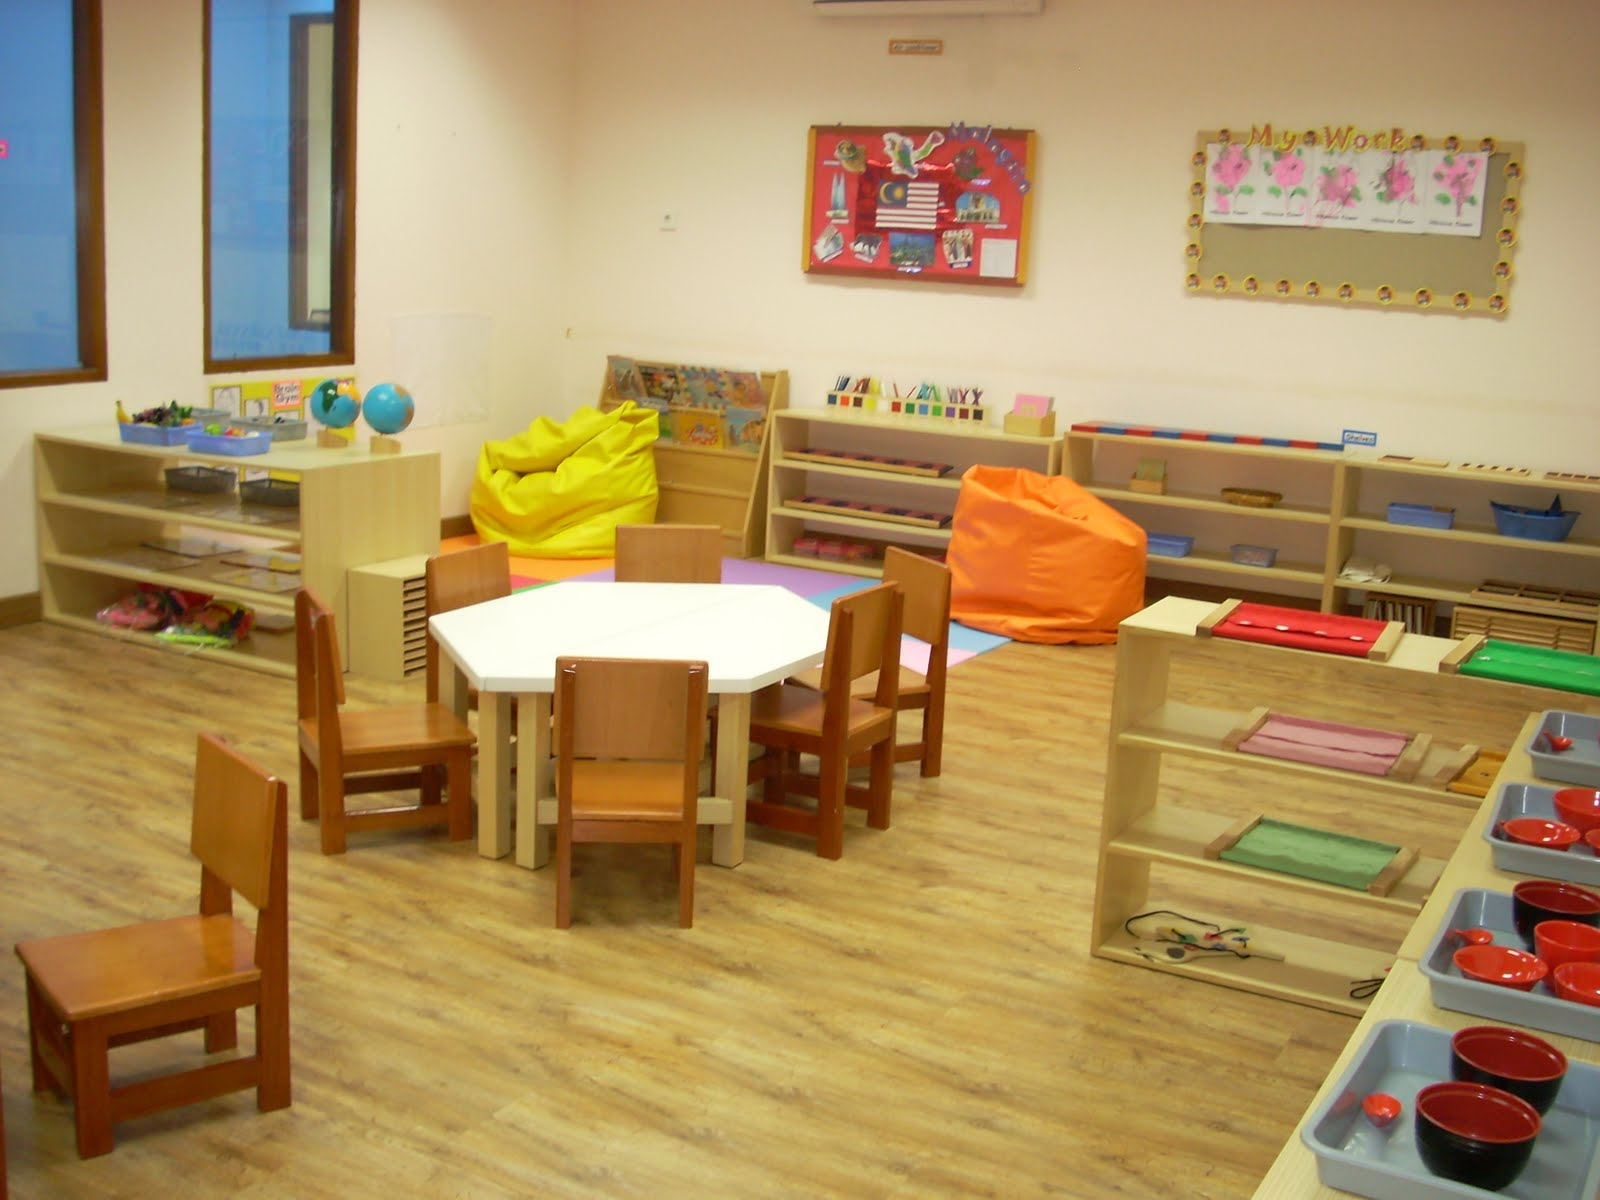 Montessori Classroom Decoration Ideas ~ Montessori classroom decorations just b use